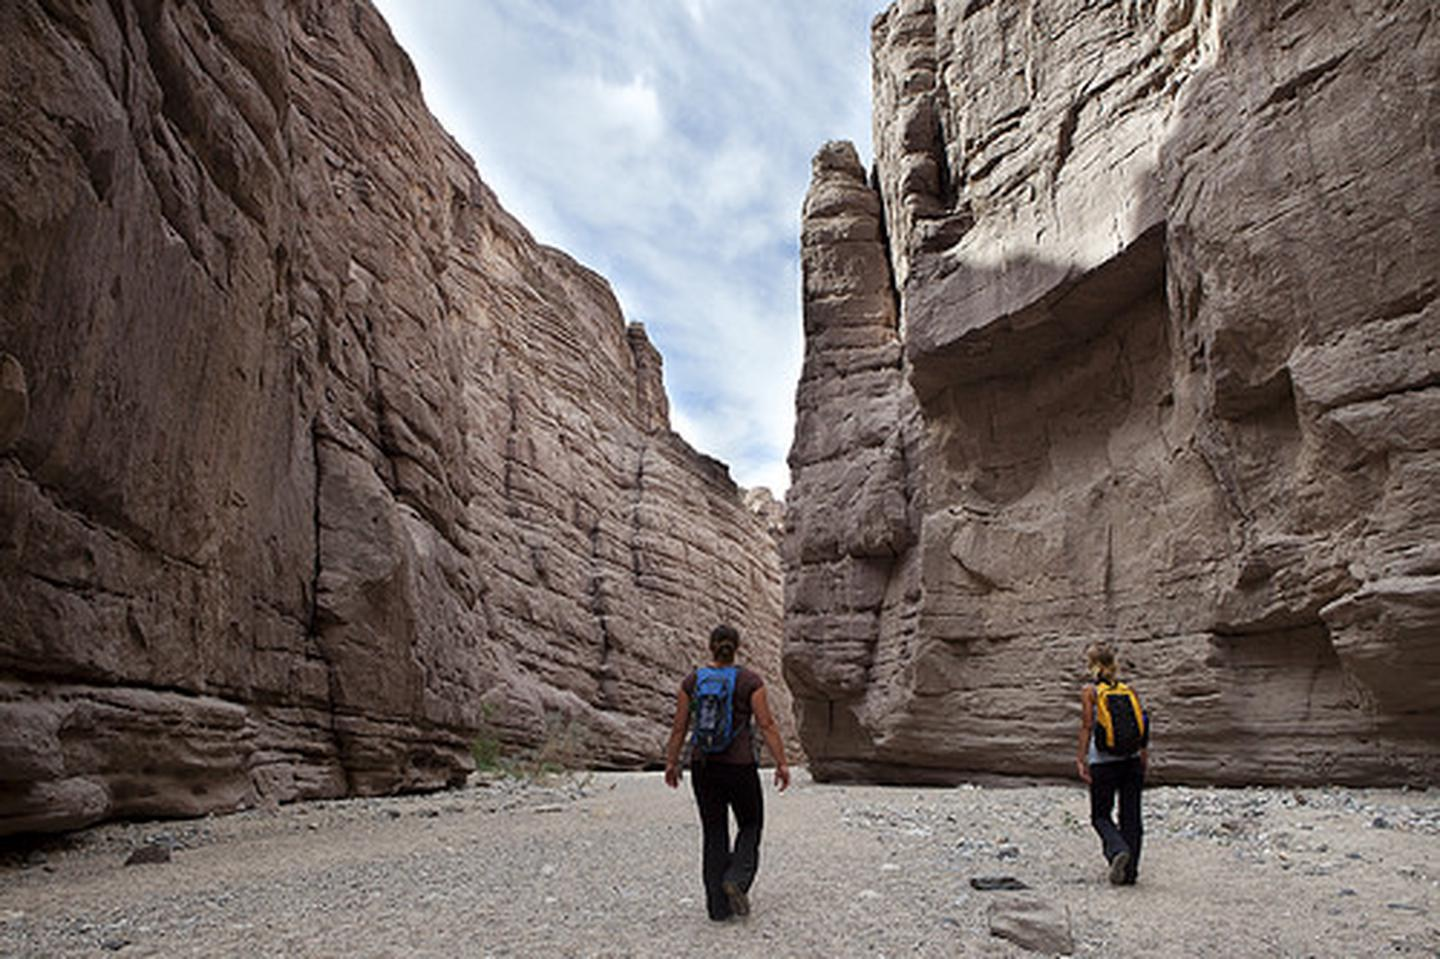 Mecca Hills WildernessIn addition to countless opportunities for cross-country exploration for adventurous hikers, two marked trails offer hikes to particularly scenic spots. Painted Canyon offers a moderate hike of up to five miles round trip through colorful rock formations.